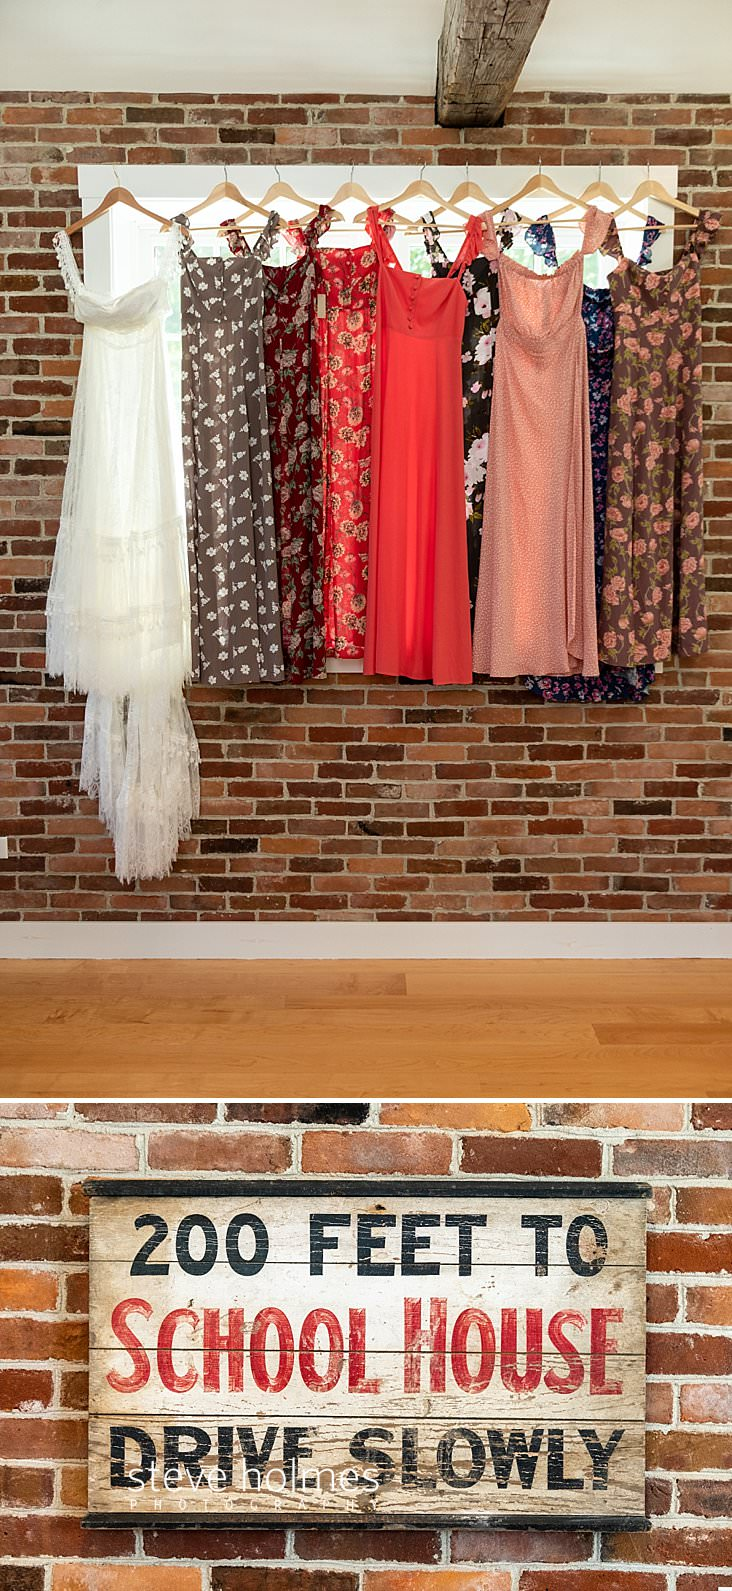 08_Bridal gown and bridesmaids dresses hang in window surrounded by brick wall.jpg